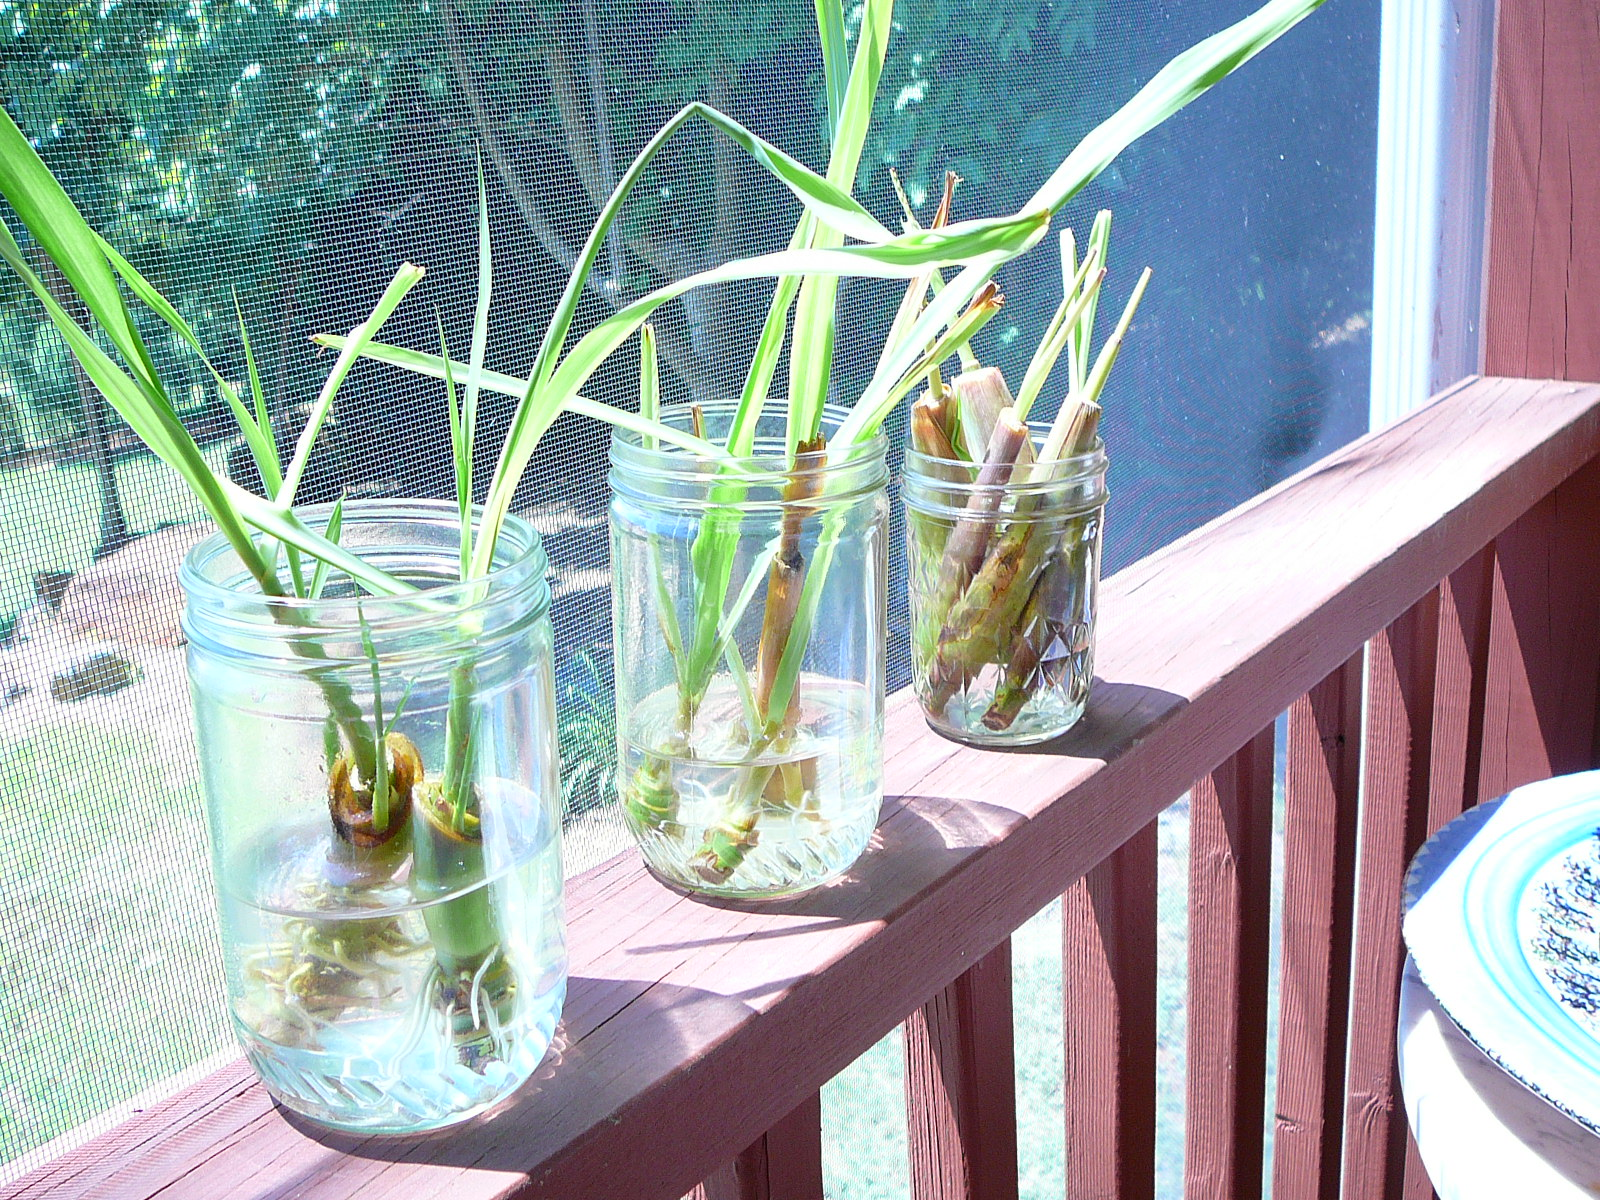 Lemongrass mama stalks, ready to plant